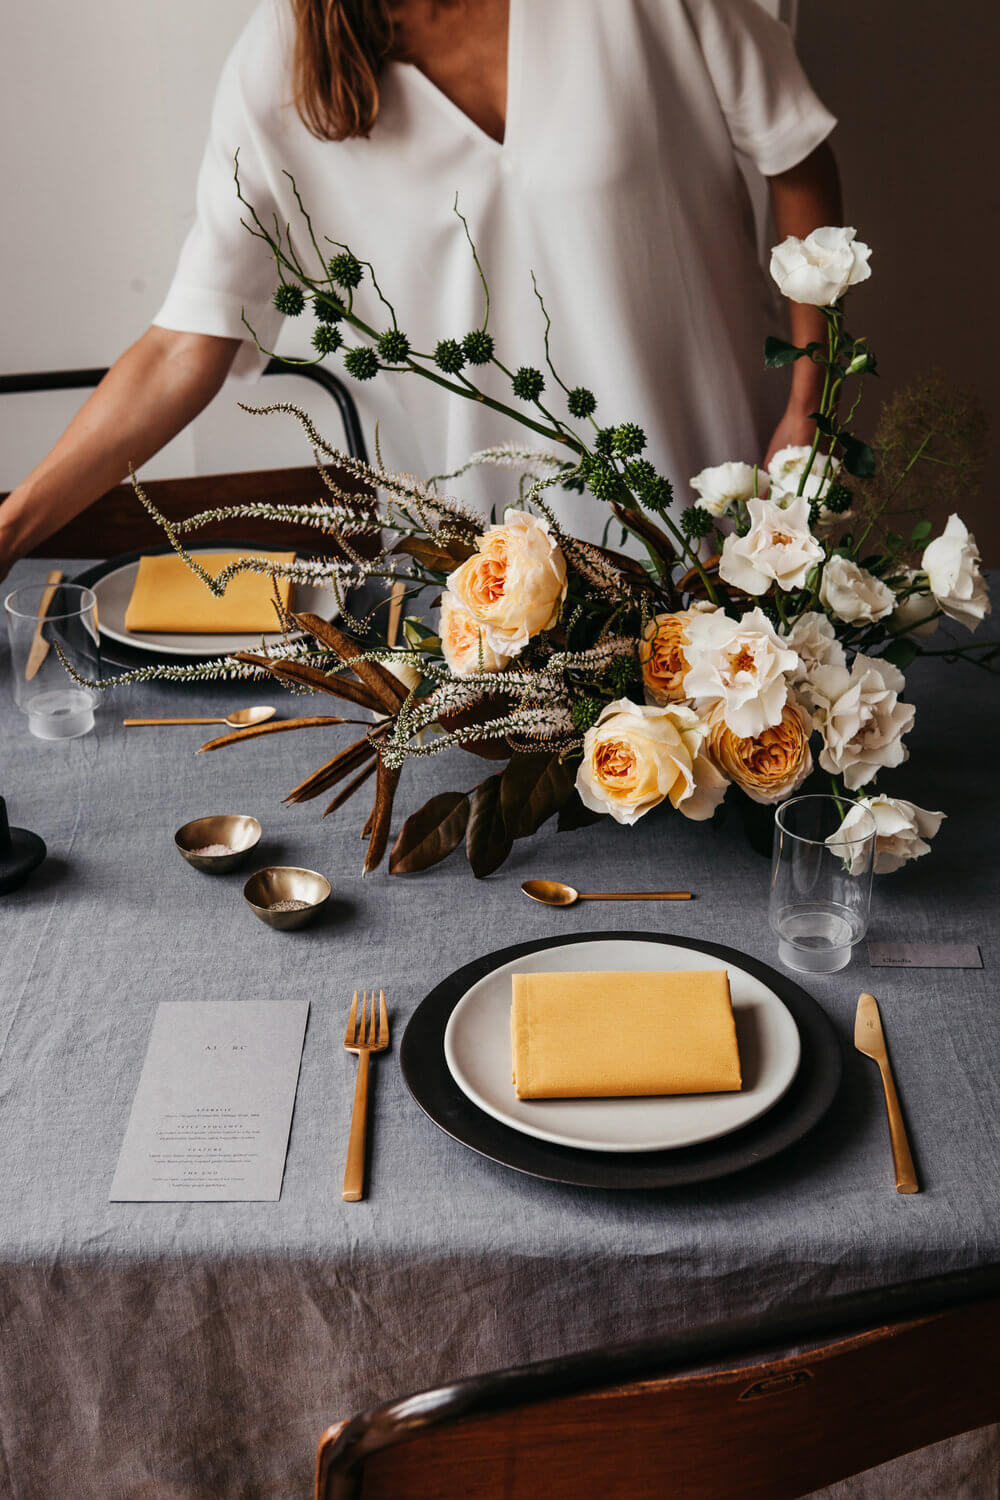 A woman in a white shirt works on a table setting. The rectangular table has a grey tablecloth, black and white dinner plates with mustard coloured napkins on top, gold cutlery, a printed item to the left of each place, and yellow and white flowers arrangements.